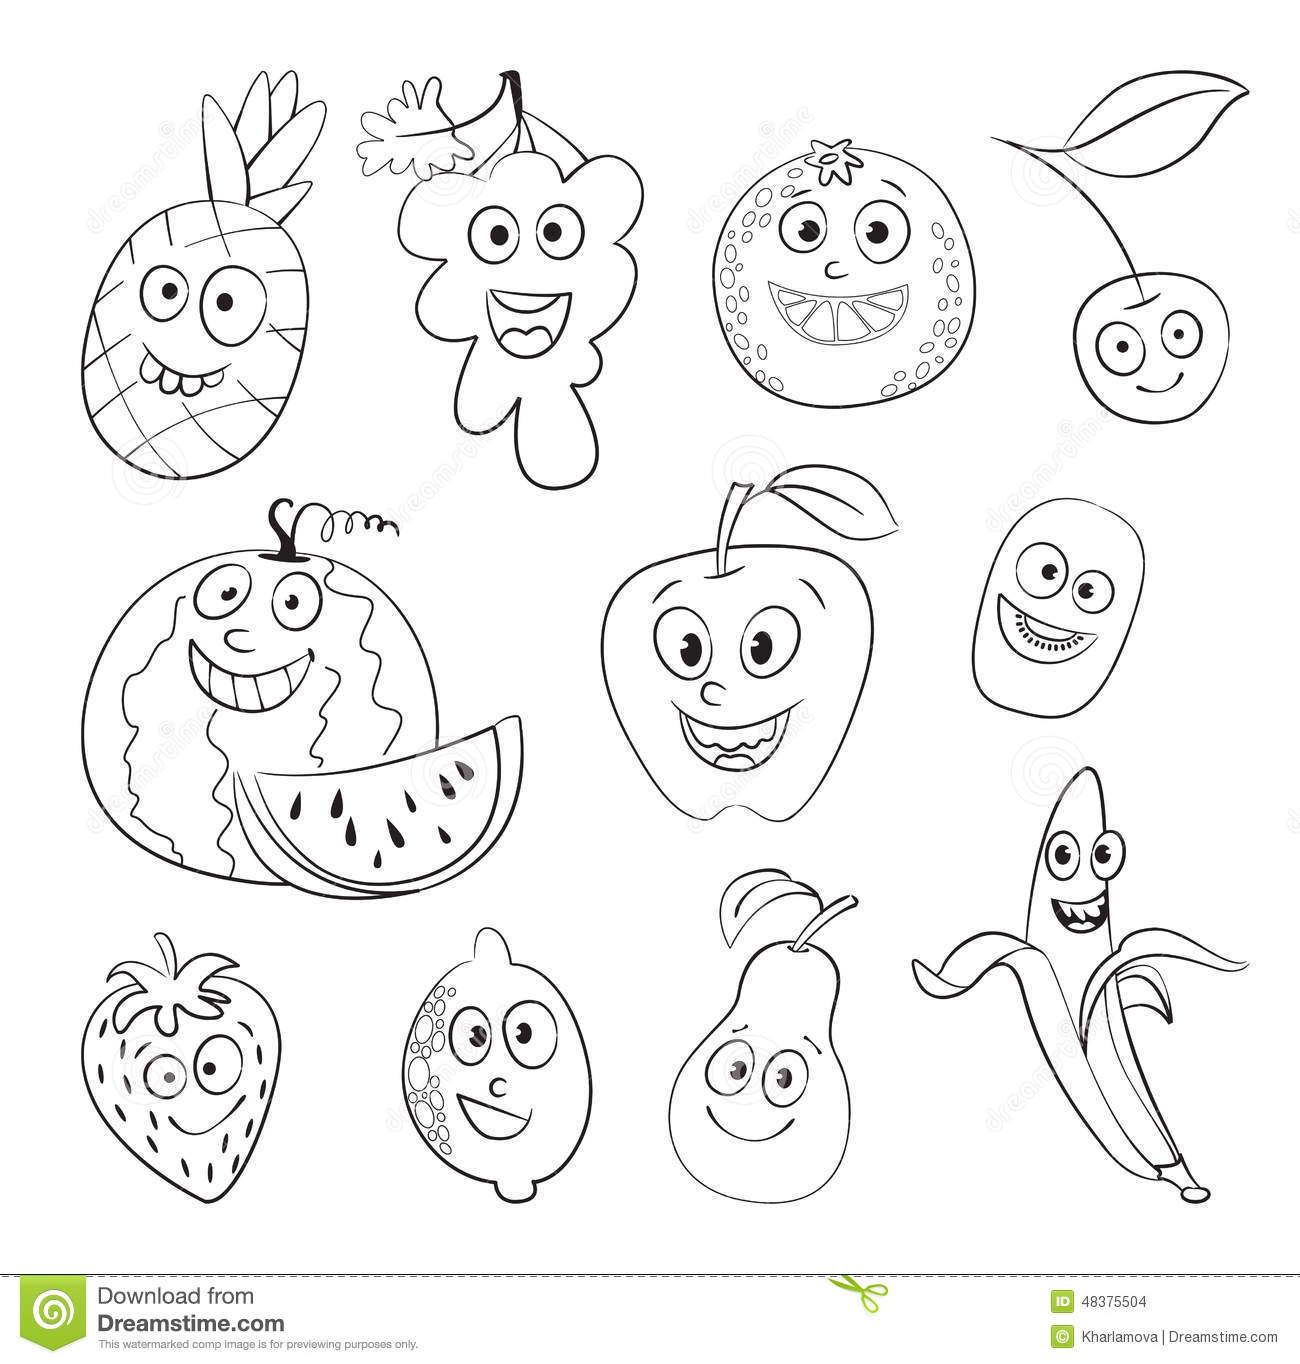 orange cartoon character coloring pages - photo#19